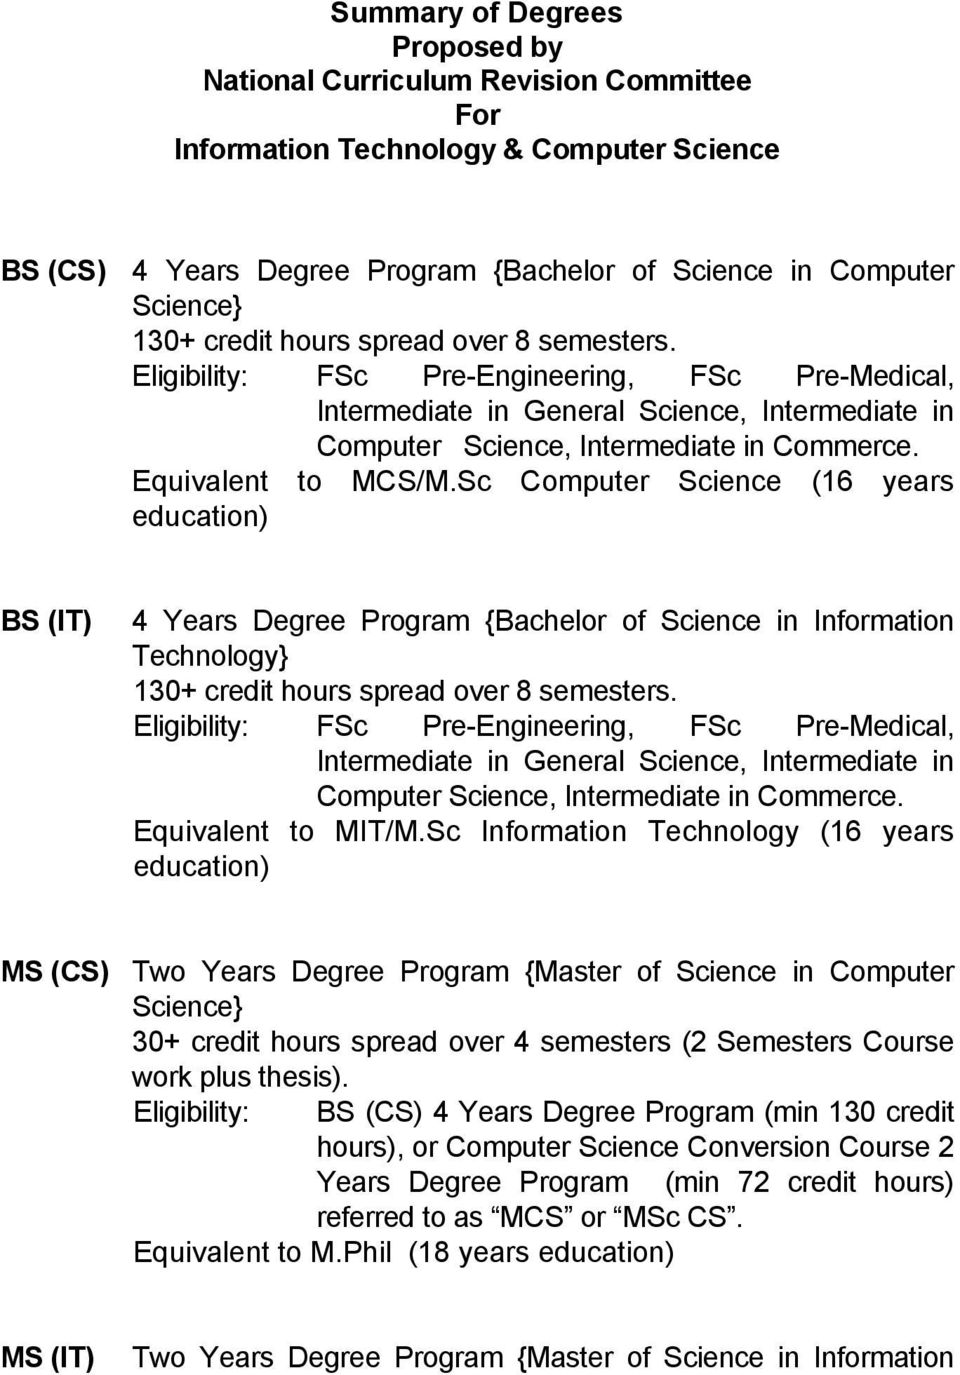 mphil thesis in computer science networking